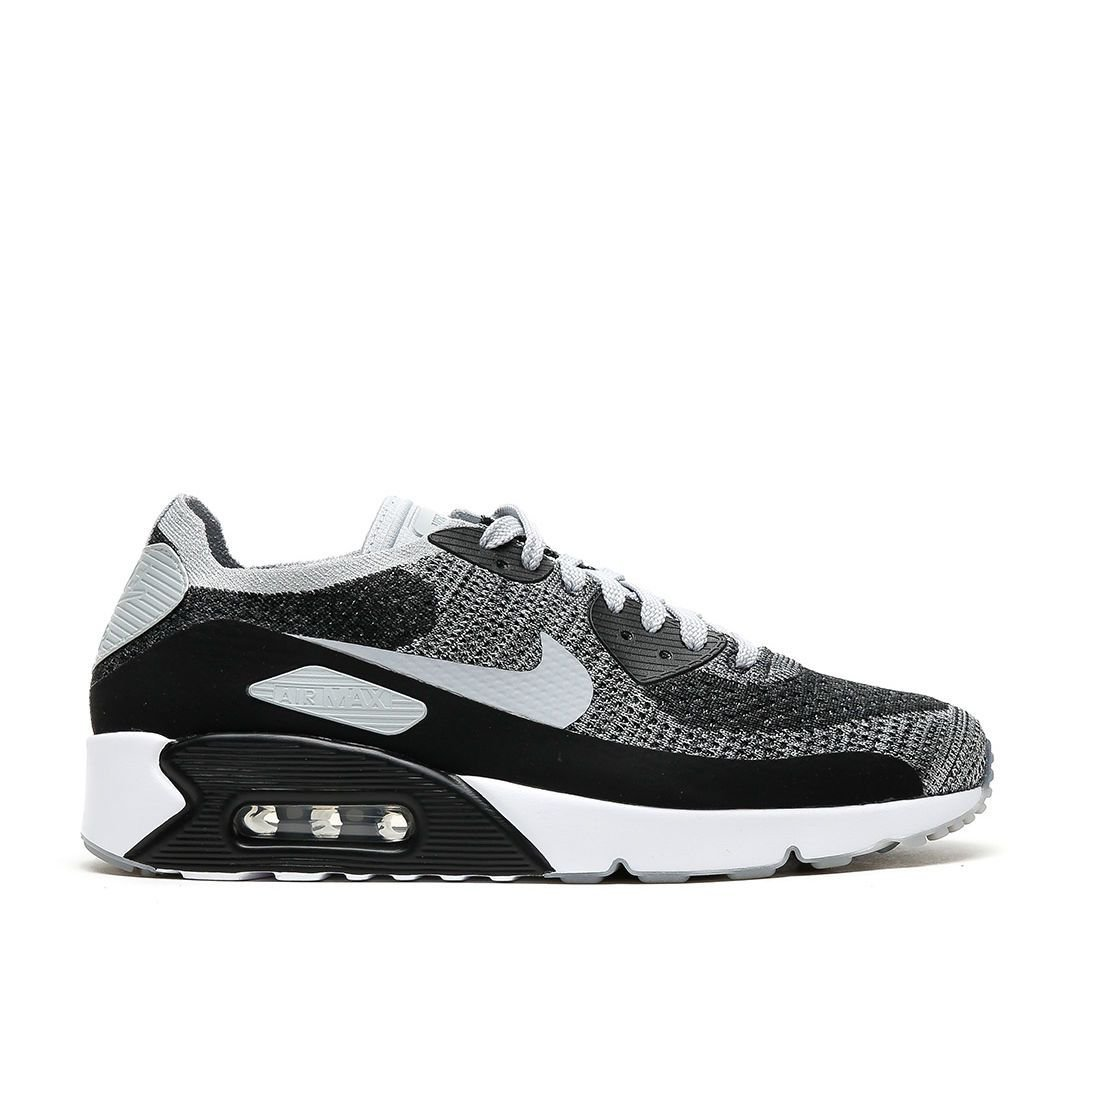 4d9ecca0d1e65b Nike Mens Air Max 90 Ultra 2.0 Flyknit Running Shoes Black Wolf Grey Pure  Platinum 875943-005 Size 12  Buy Online at Low Prices in India - Amazon.in